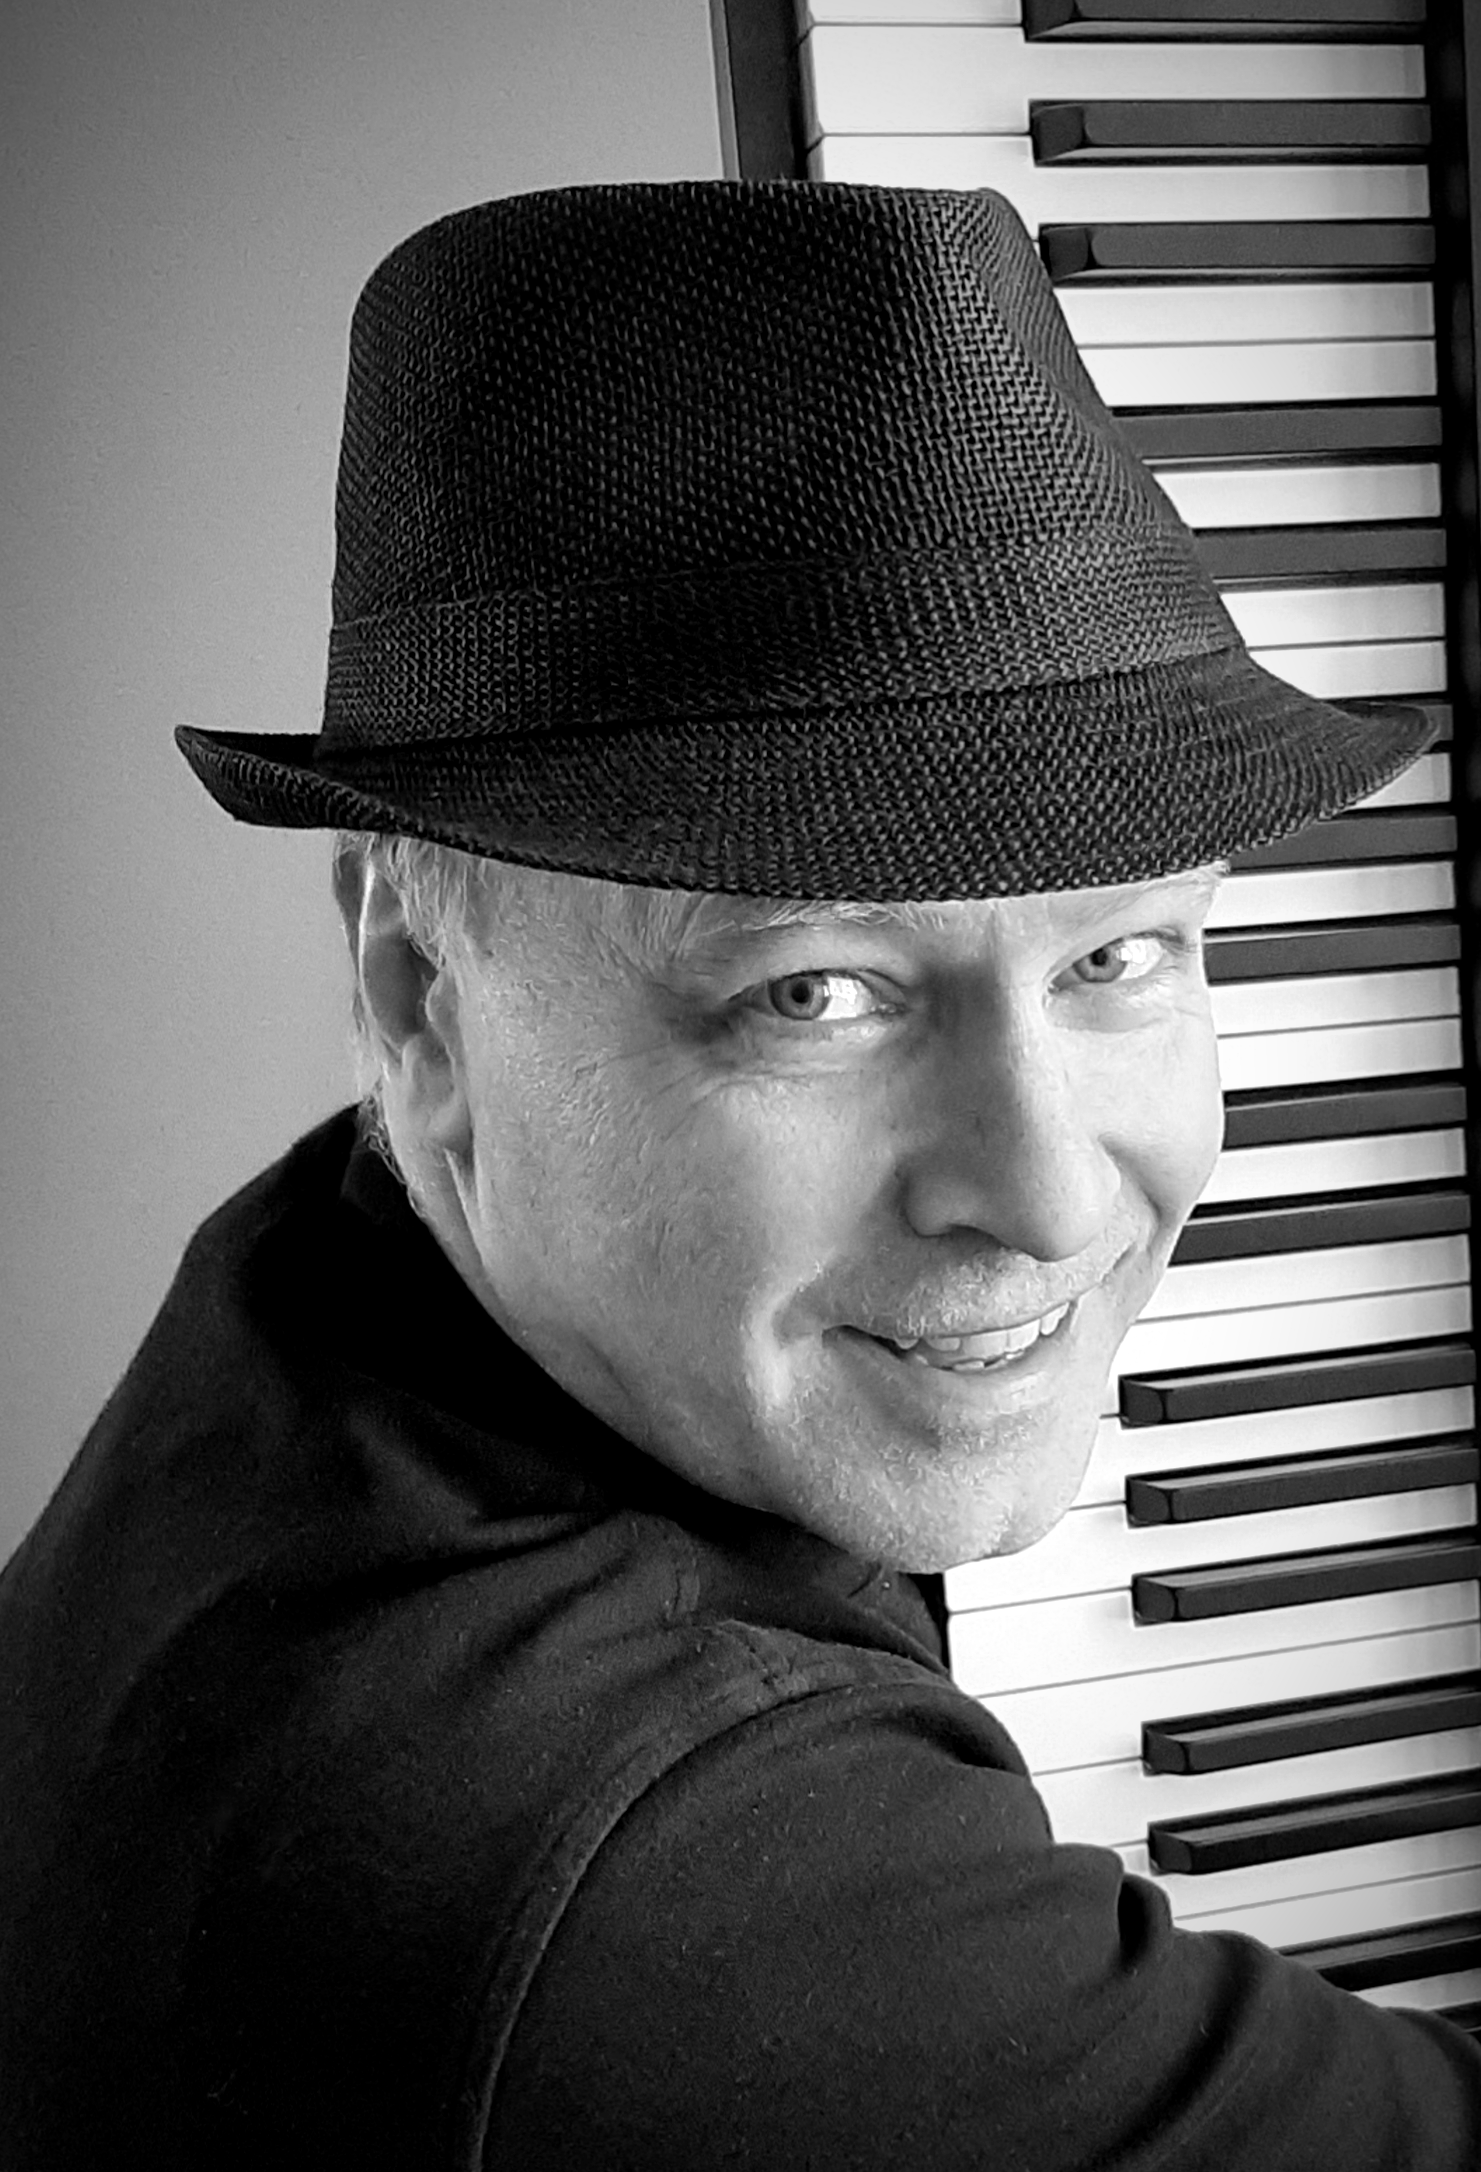 Ragtime Pianist Peter Bergin in Concert